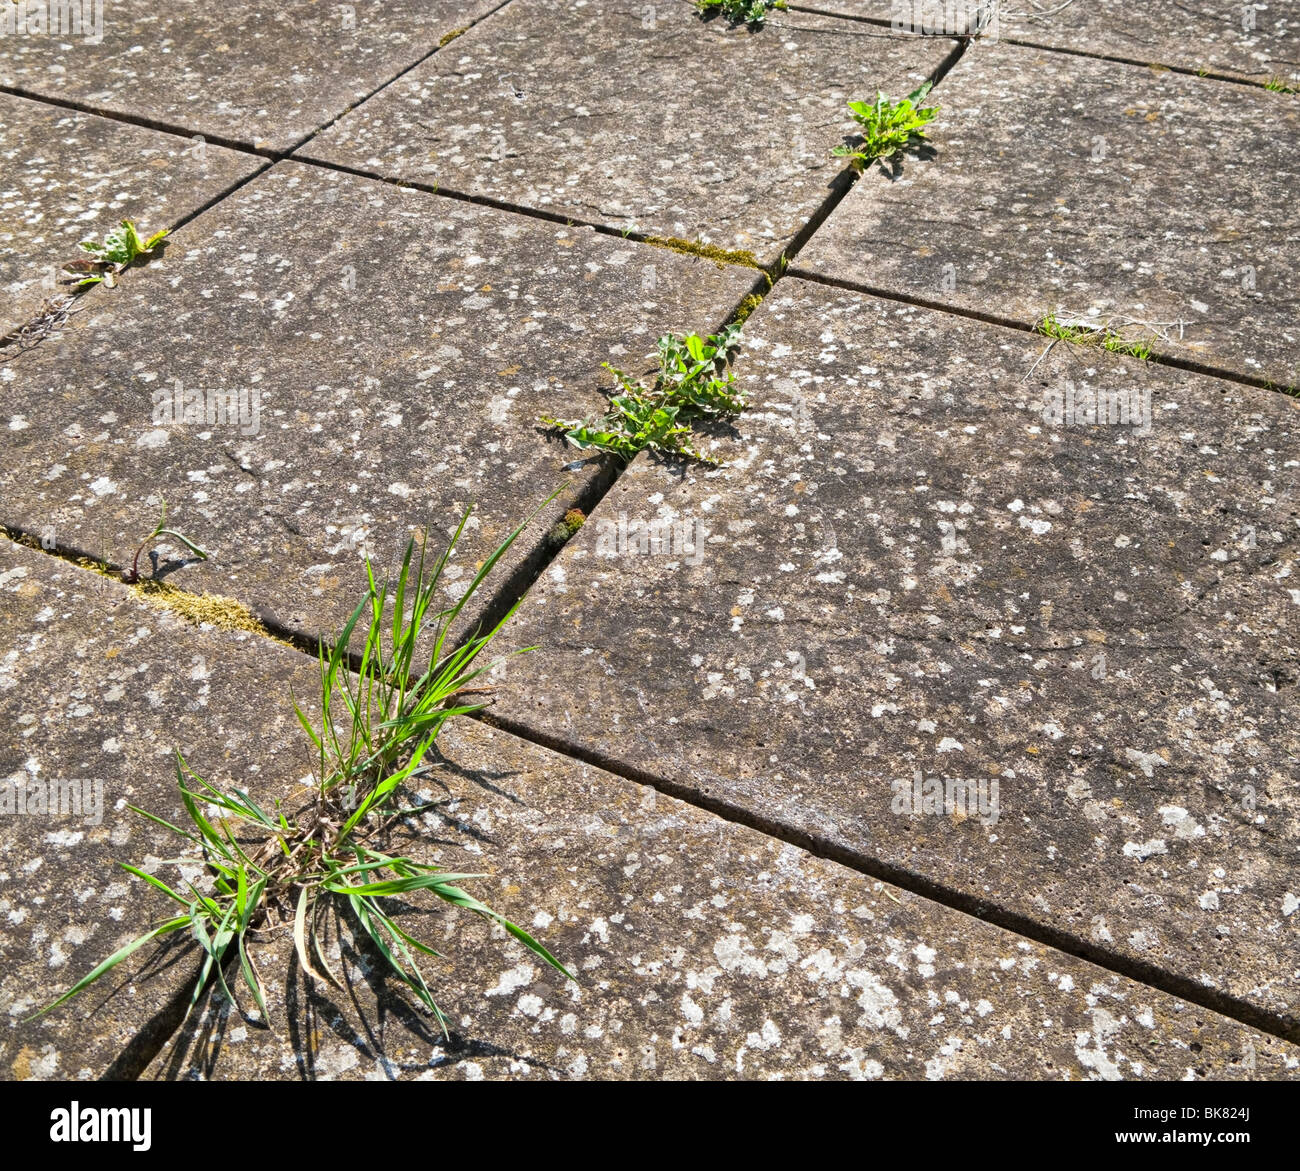 Pavement Weed Stock Photos & Pavement Weed Stock Images